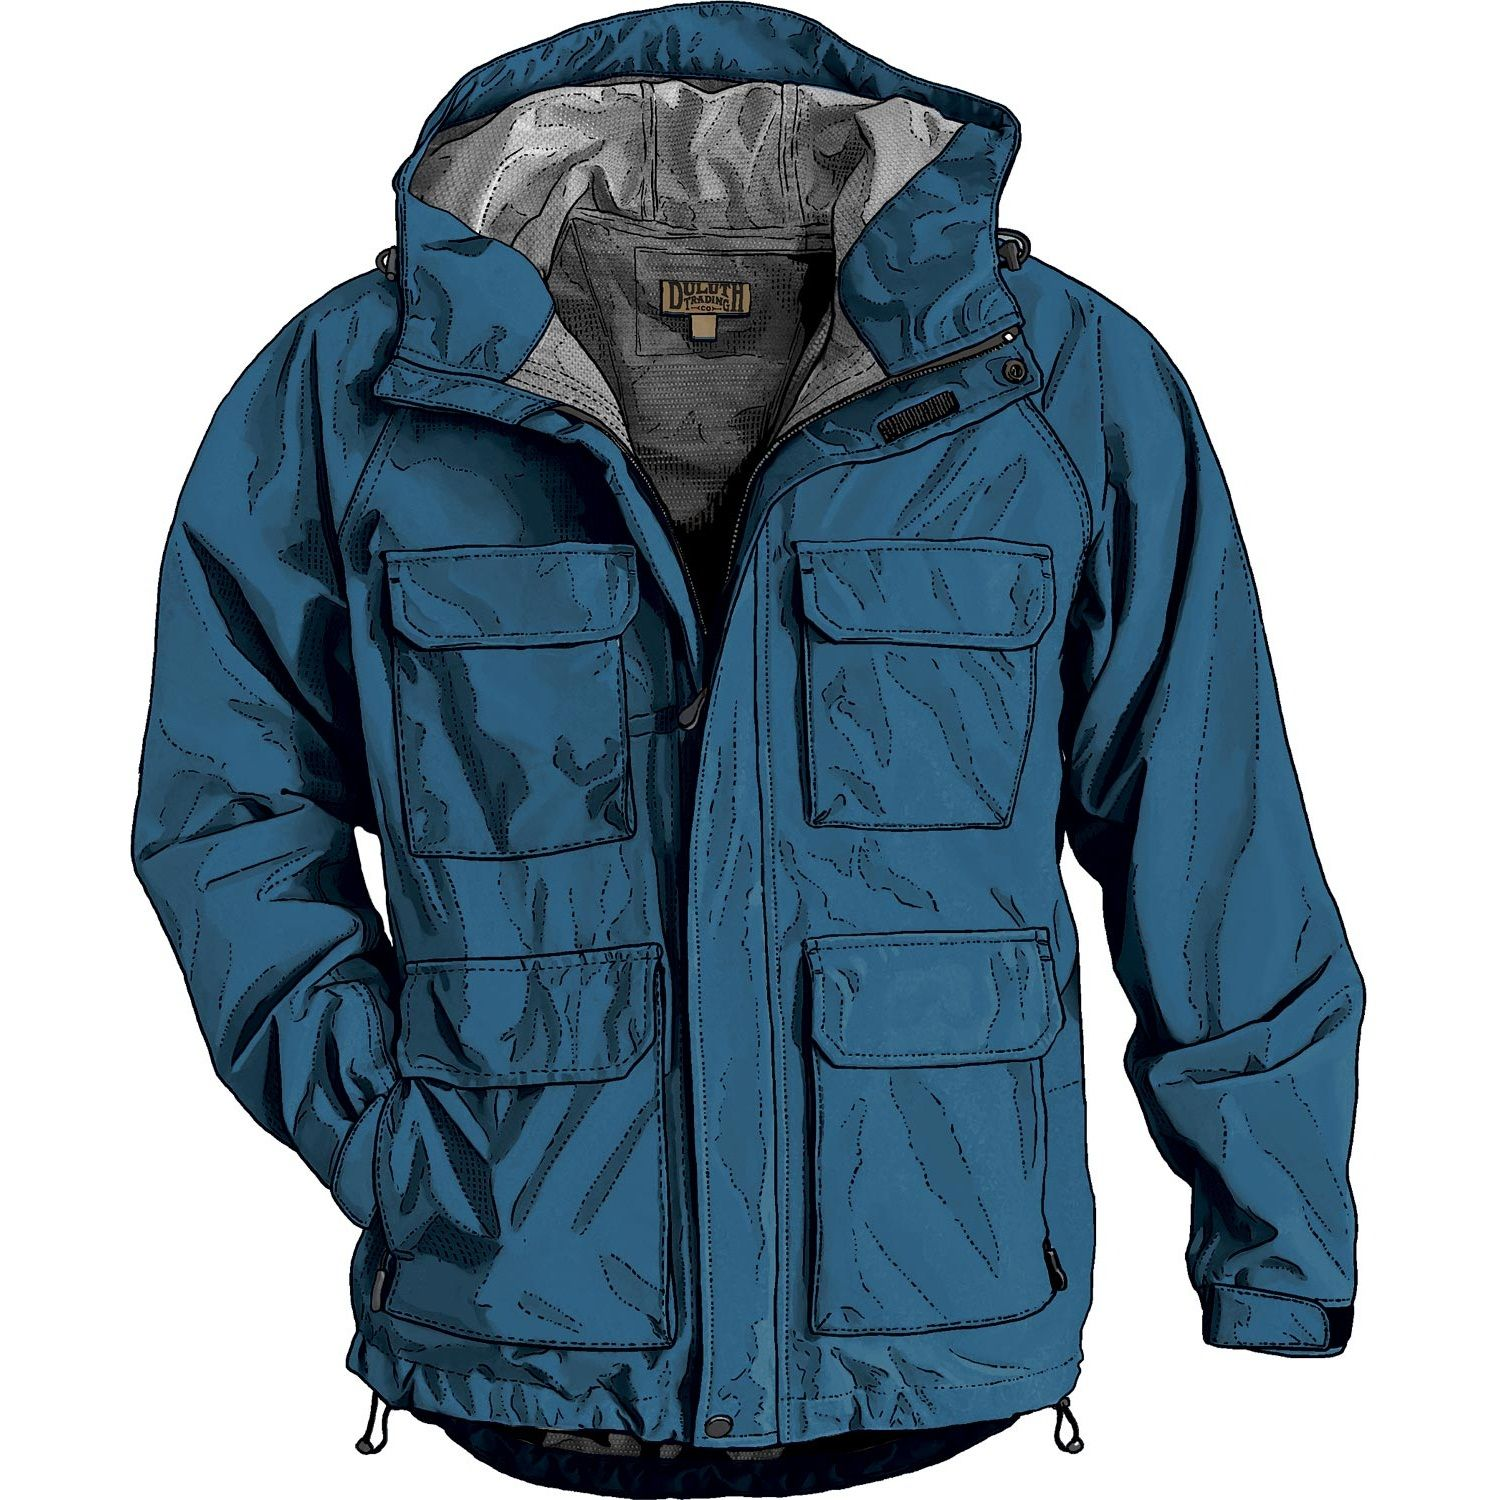 Youth Jackets & Outerwear – Page 5 – Fanletic